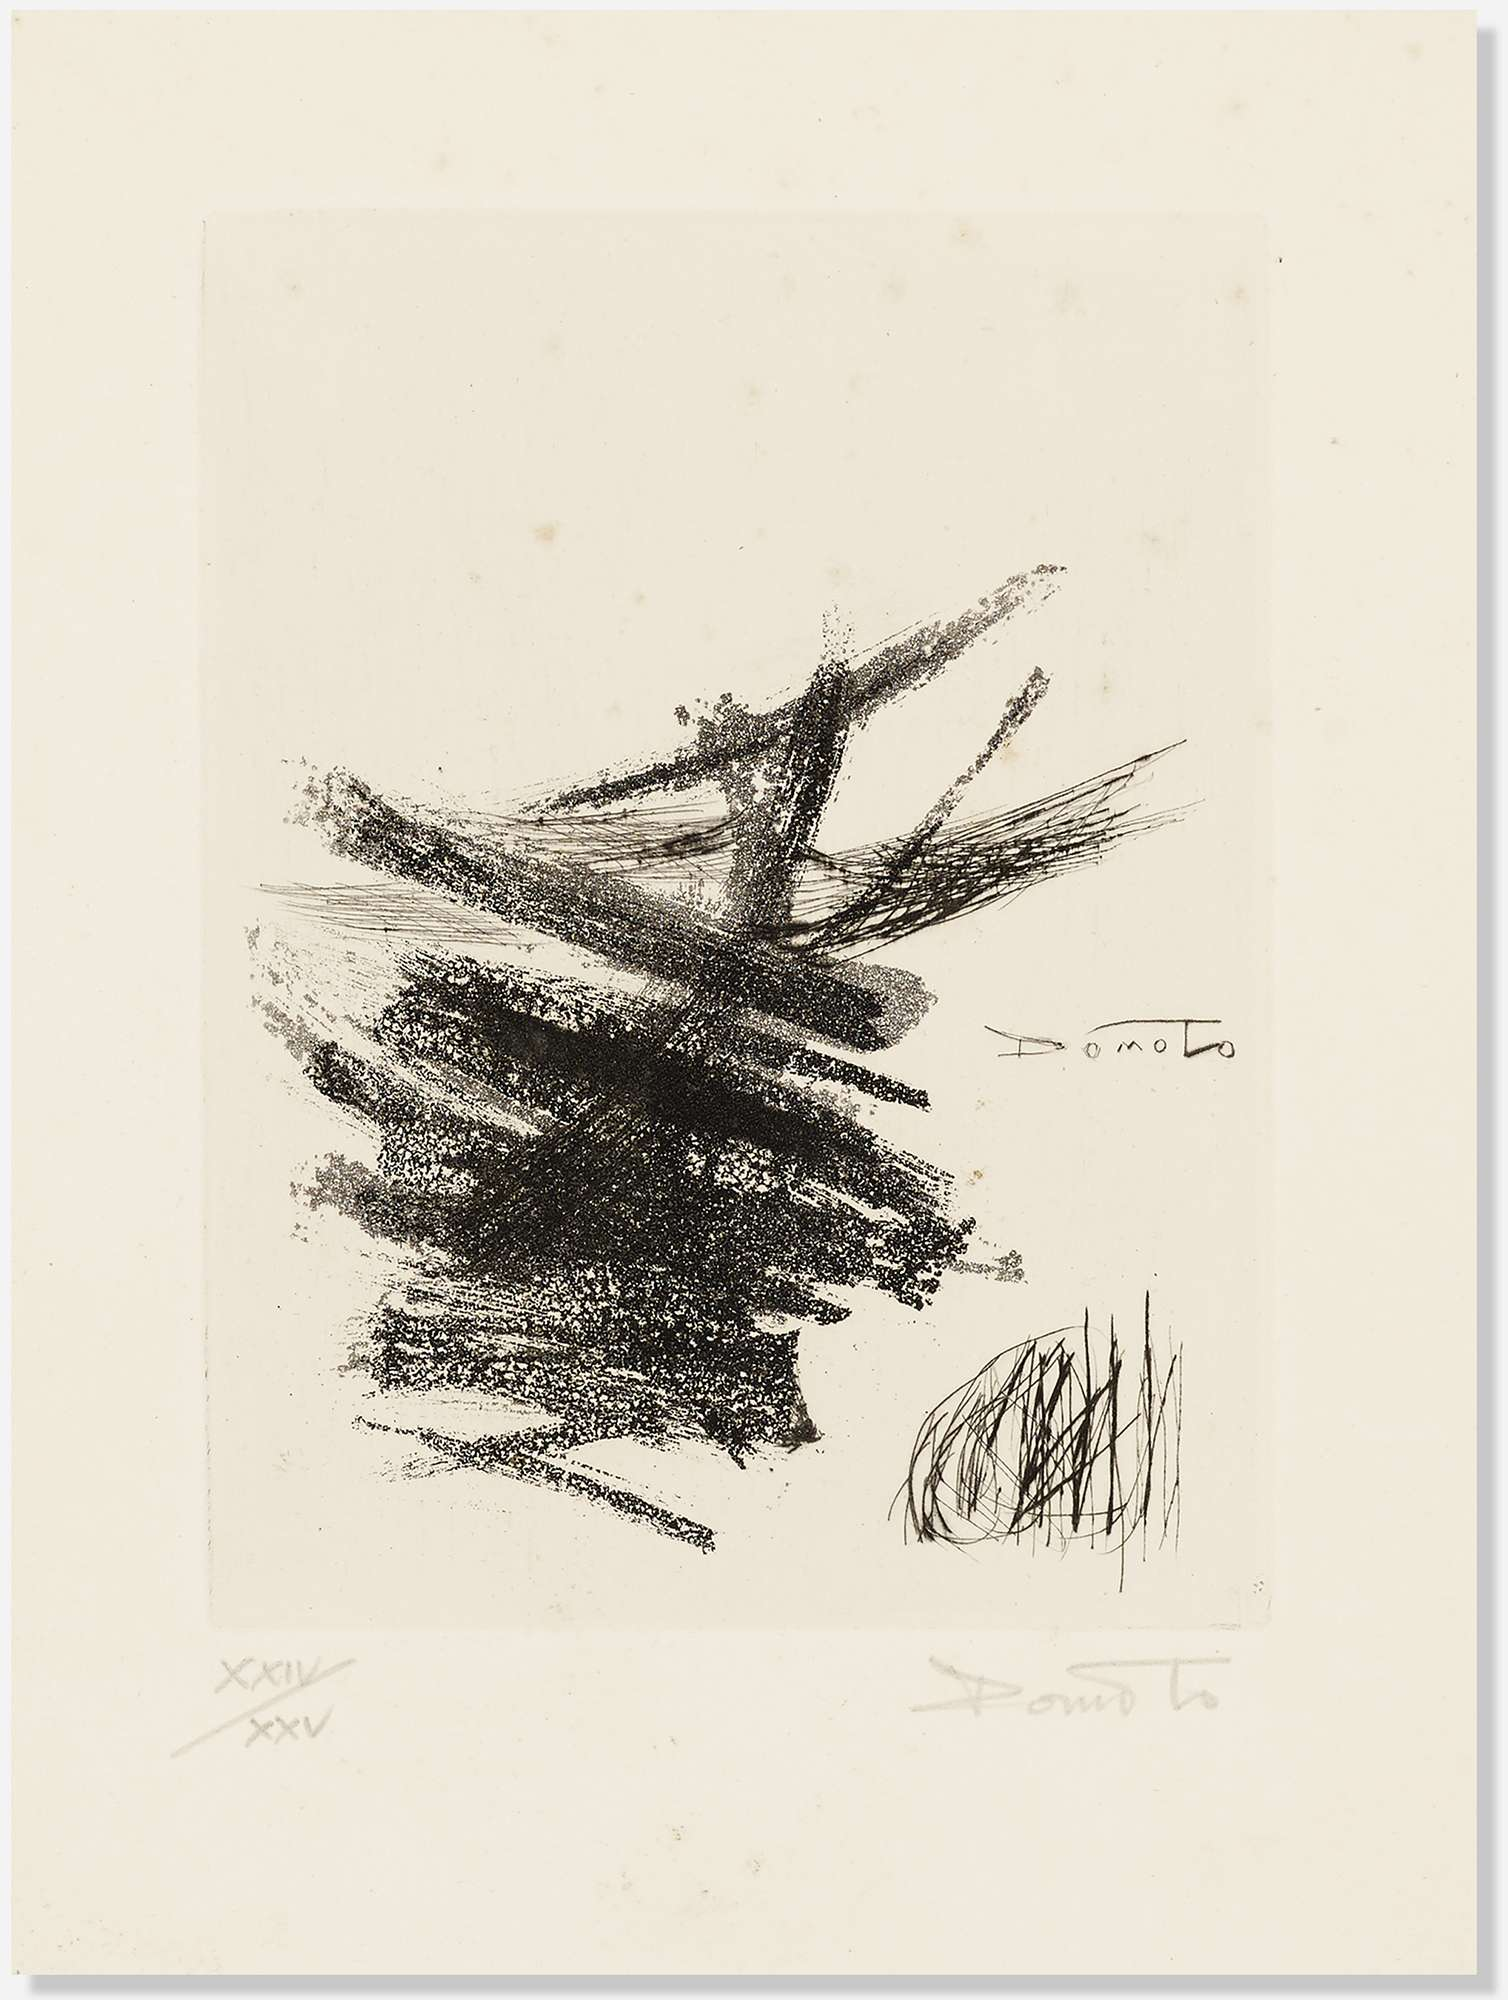 Untitled IV (from The International Avant-Garde, Vol. 1) by Hisao Domoto